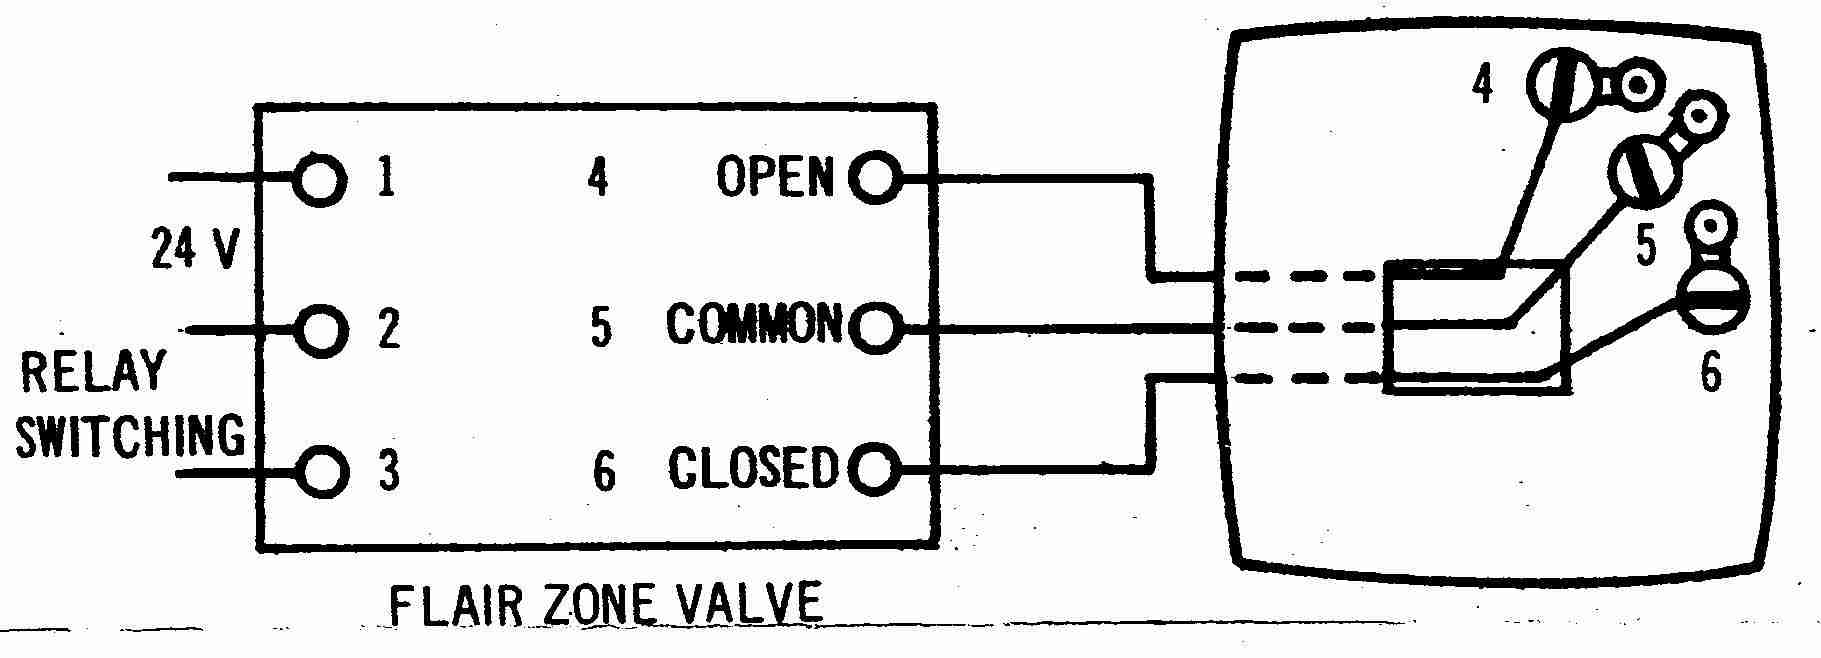 zone valve wiring installation instructions guide to heating rh inspectapedia com White Rodgers Zone Valve Wiring Diagram Taco Zone Valve Piping Diagram